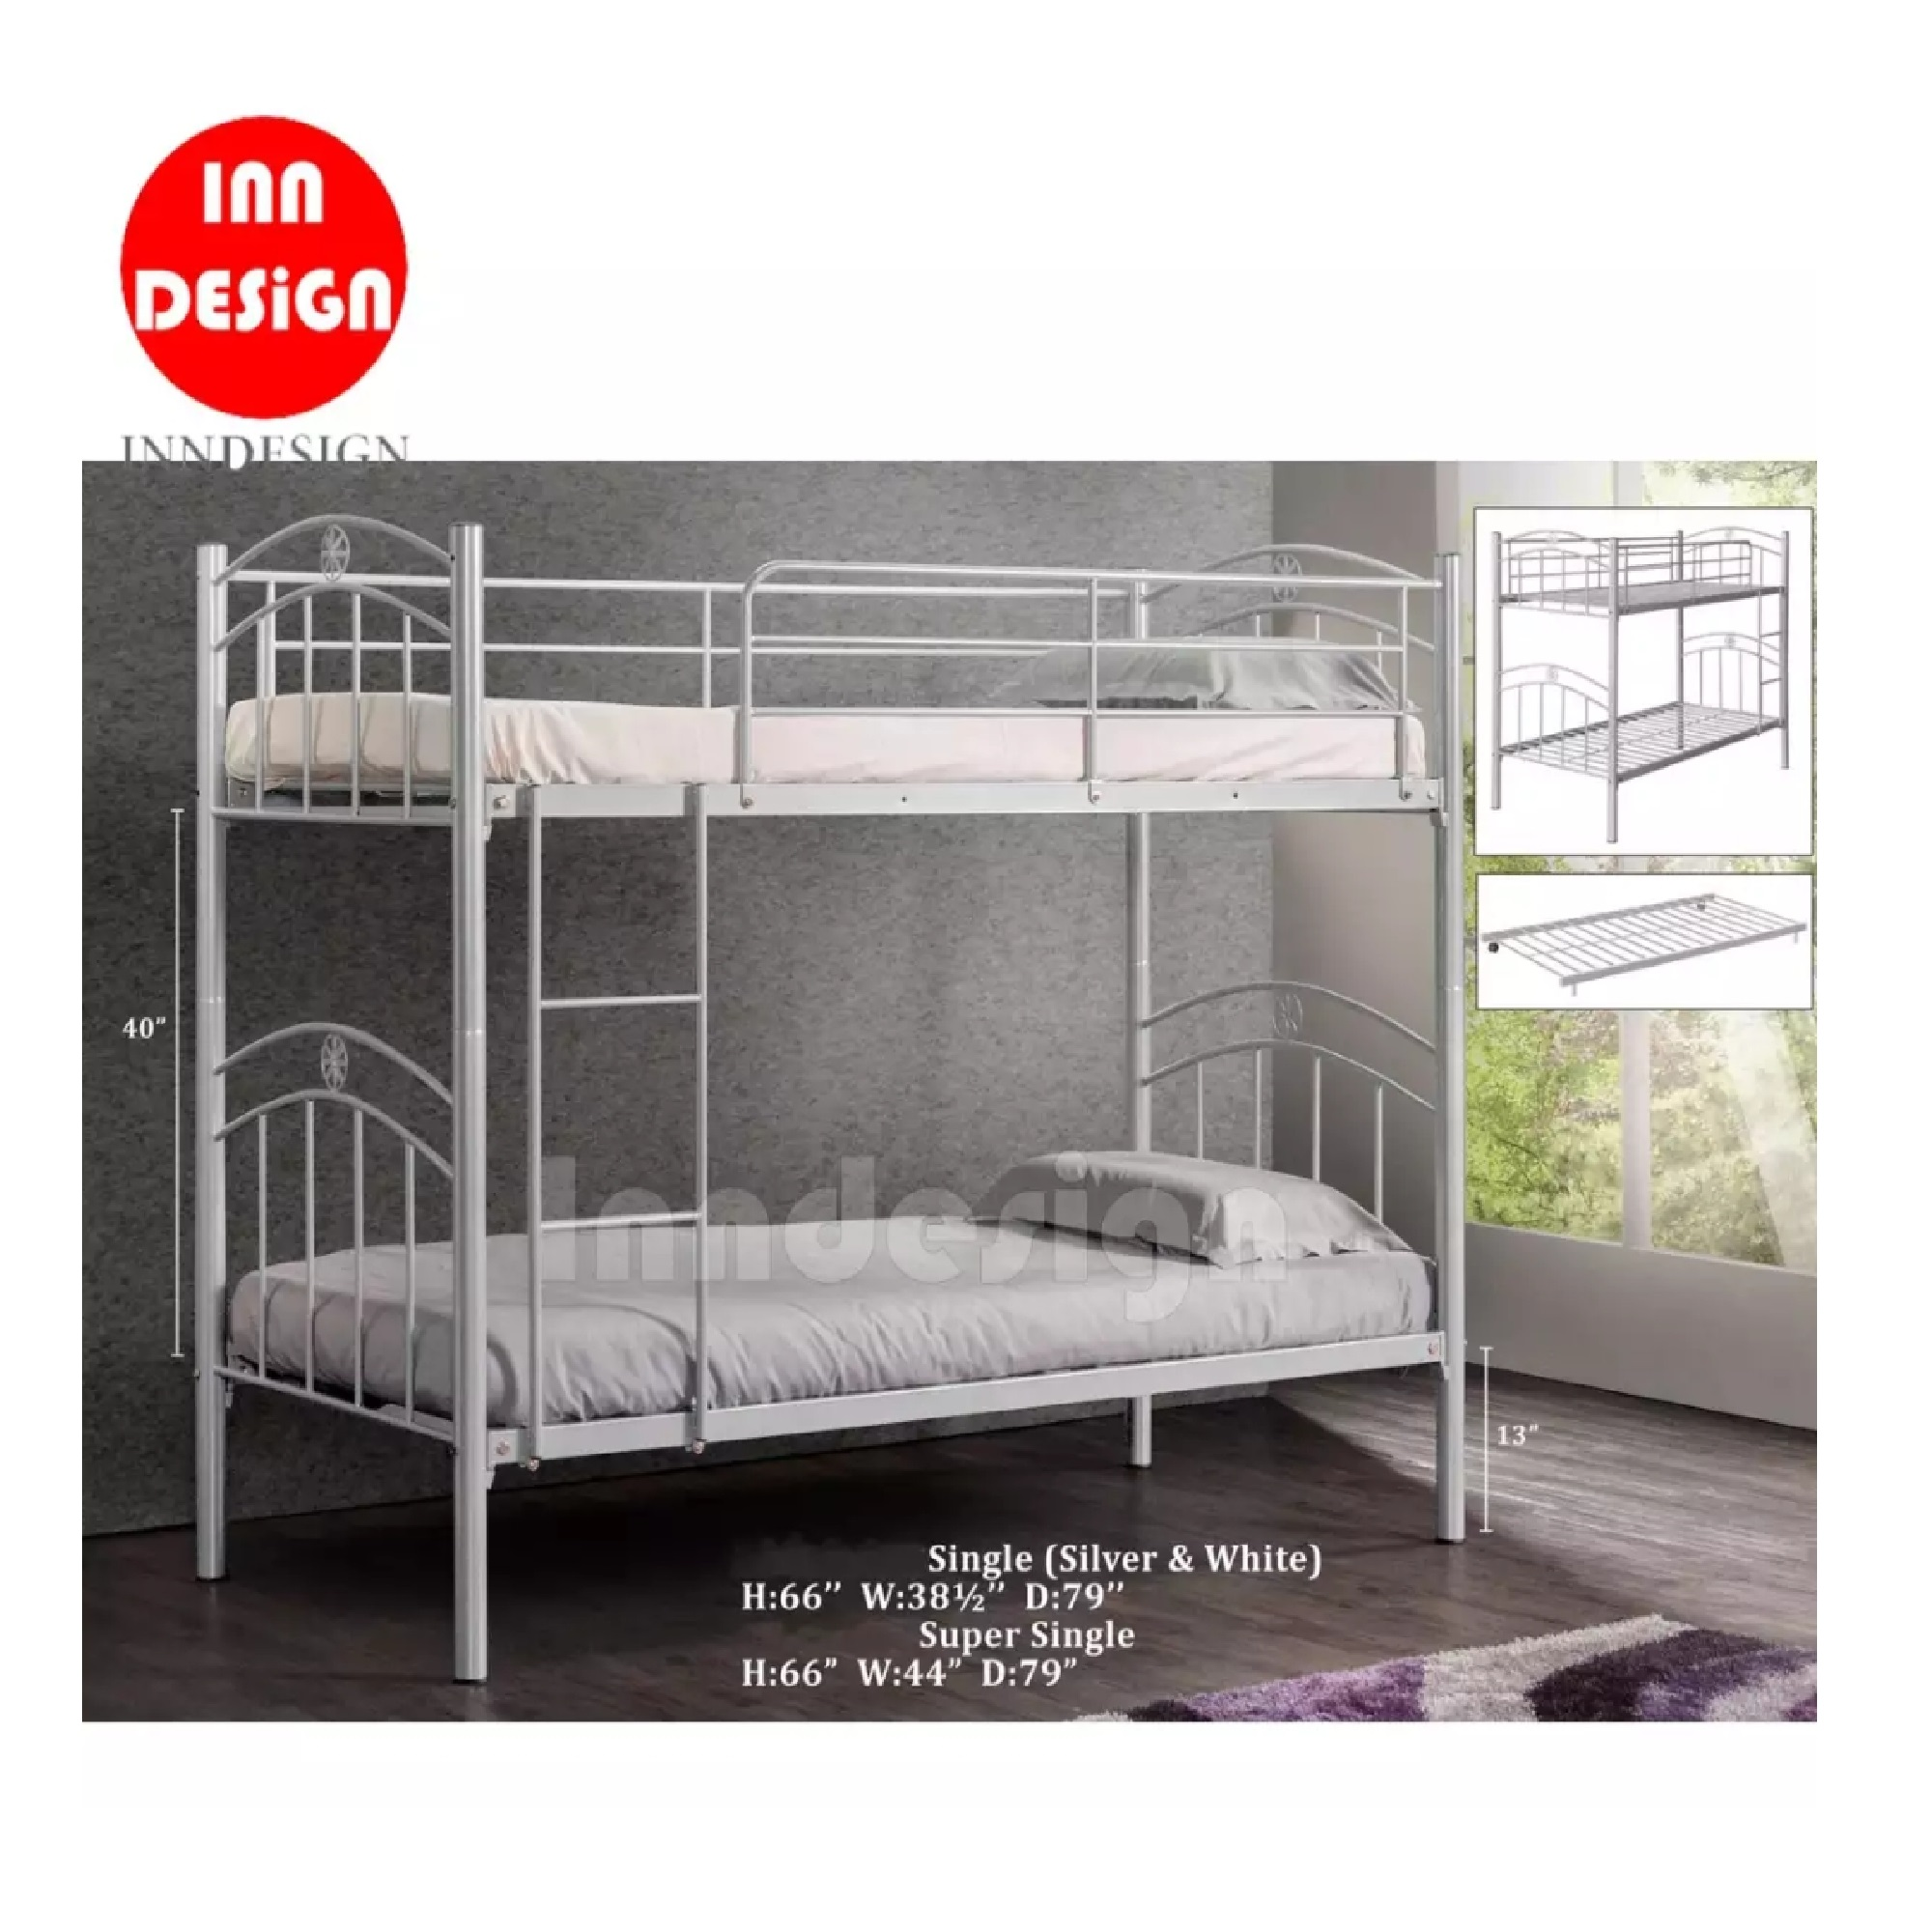 Double Deck Bed Super Single Metal Bed / Metal Bed Frame (Silver)